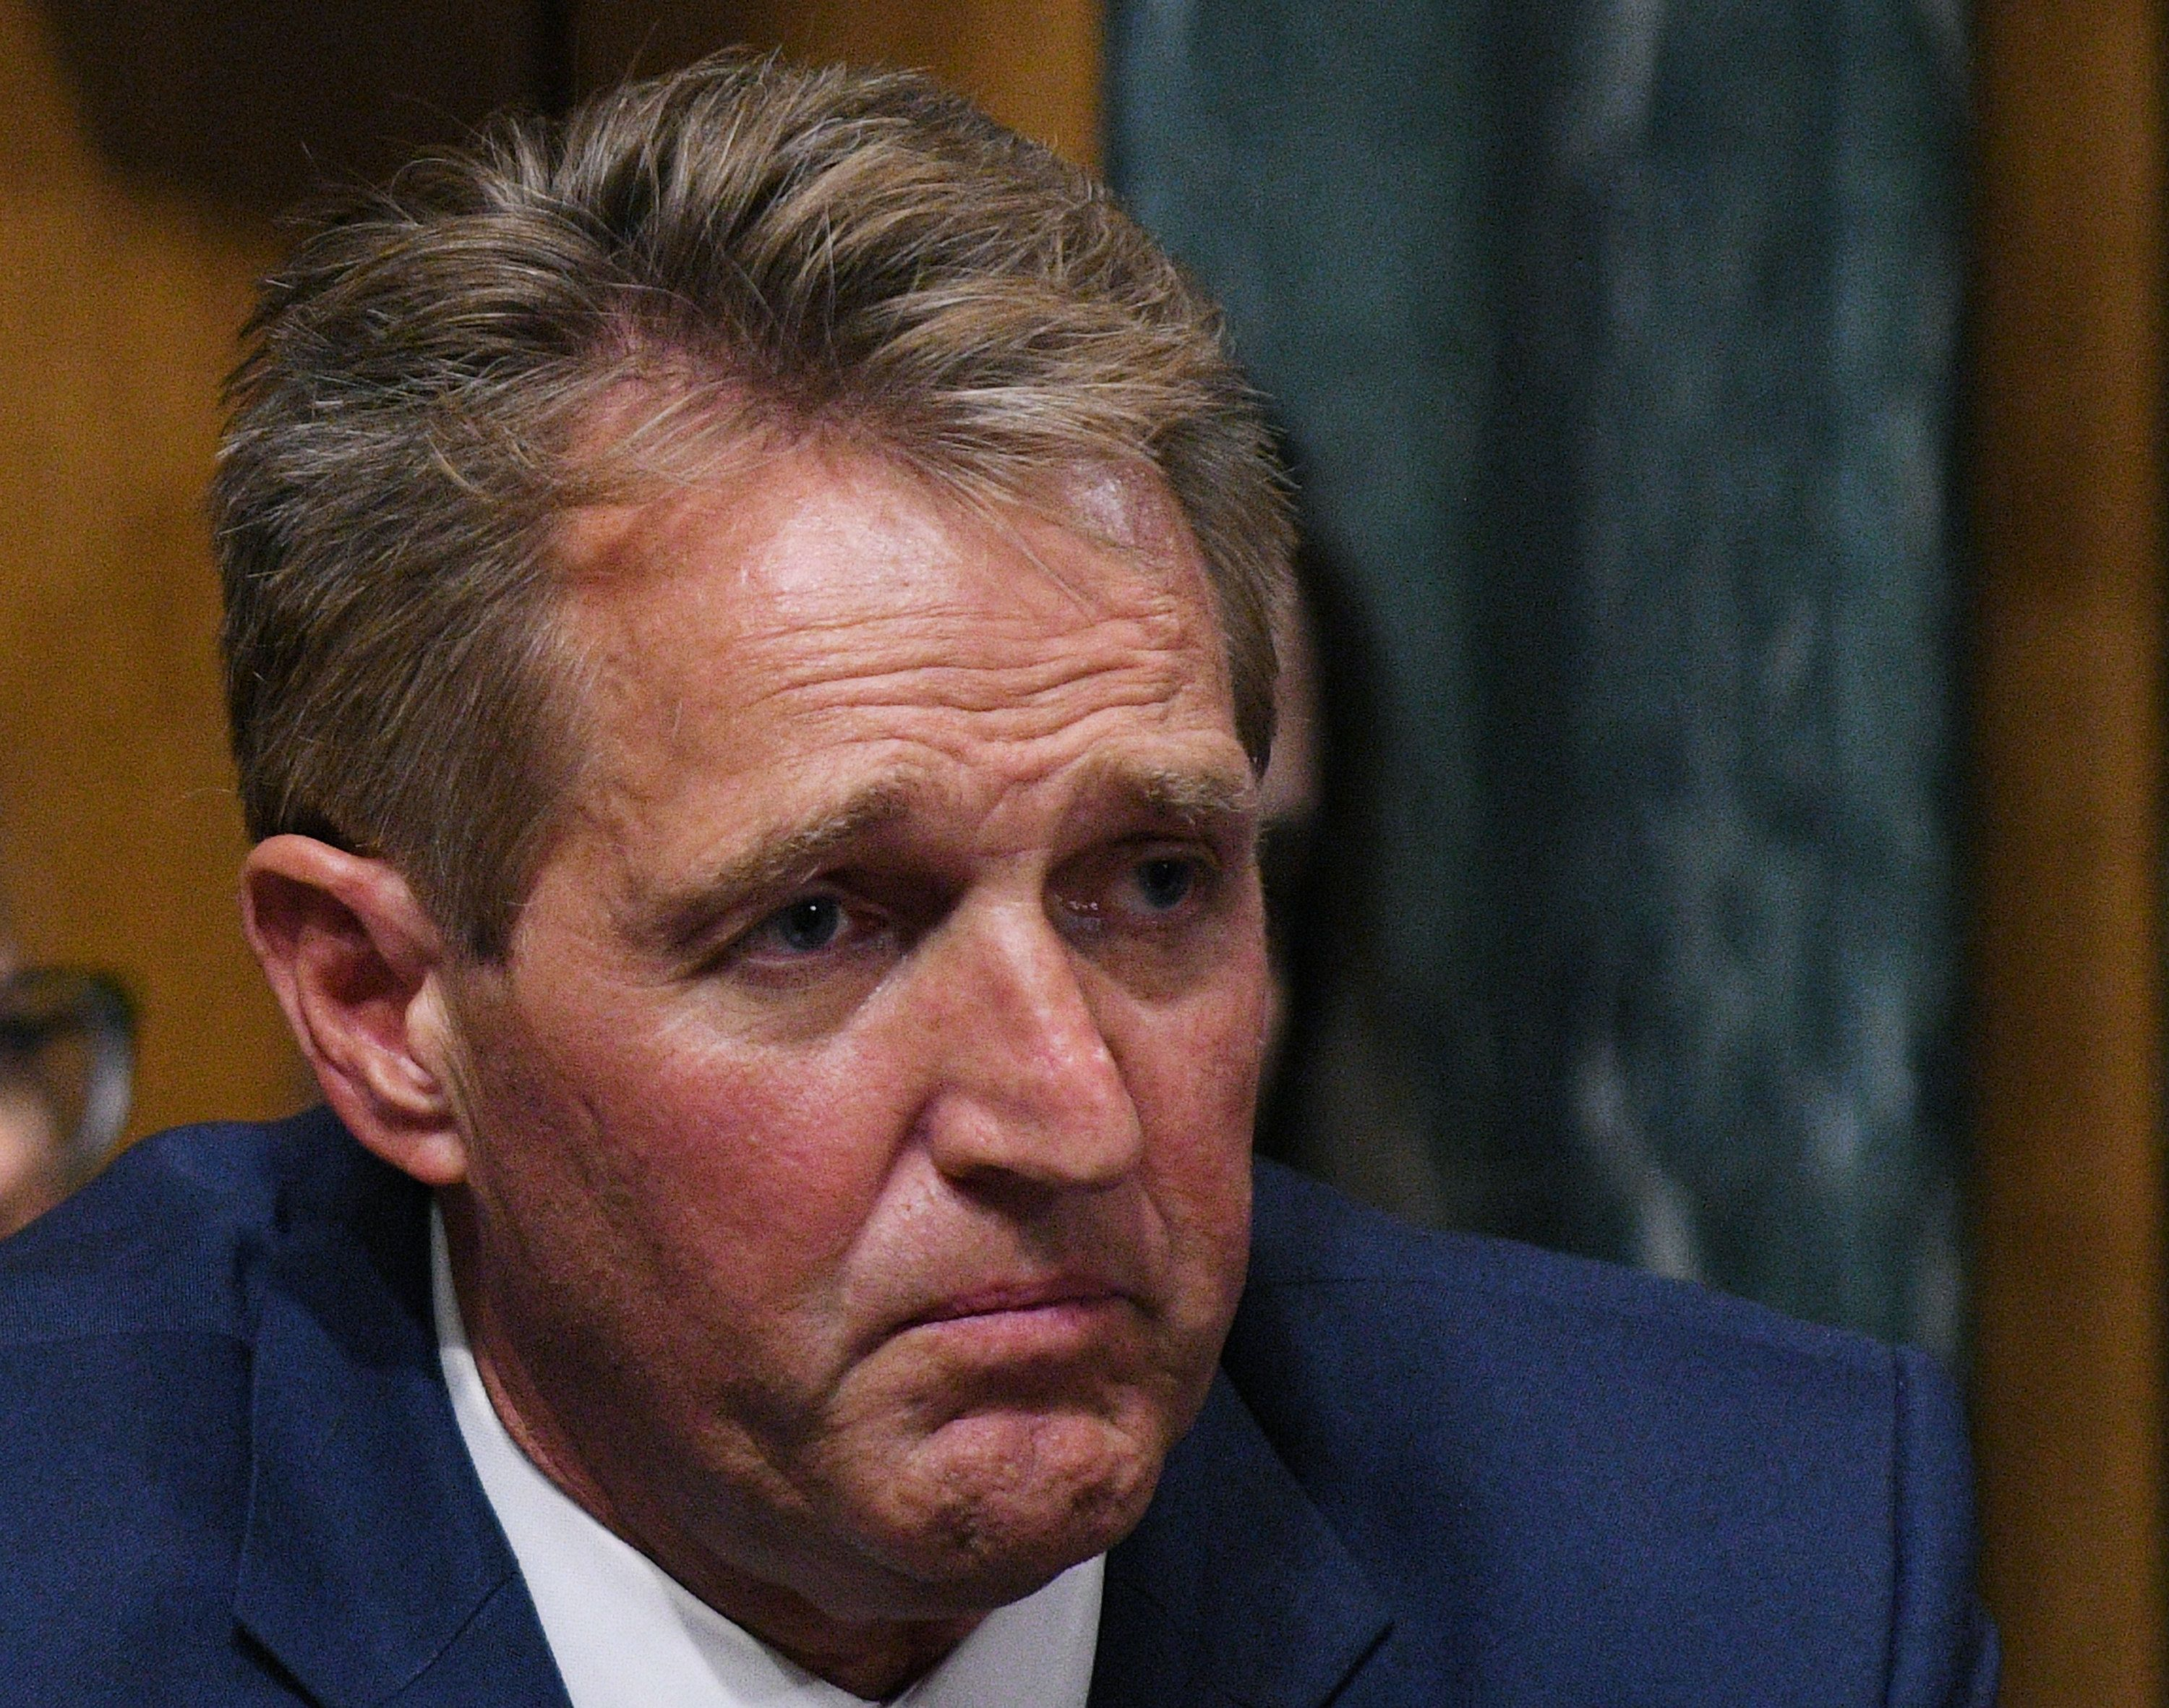 Sen. Jeff Flake, R-AZ, calls for an FBI investigation during the Senate Judiciary Committee meeting to vote on the nomination of Brett M. Kavanaugh to be an associate justice of the Supreme Court of the United States in Washington, U.S., September 28, 2018.      REUTERS/Mary F. Calvert